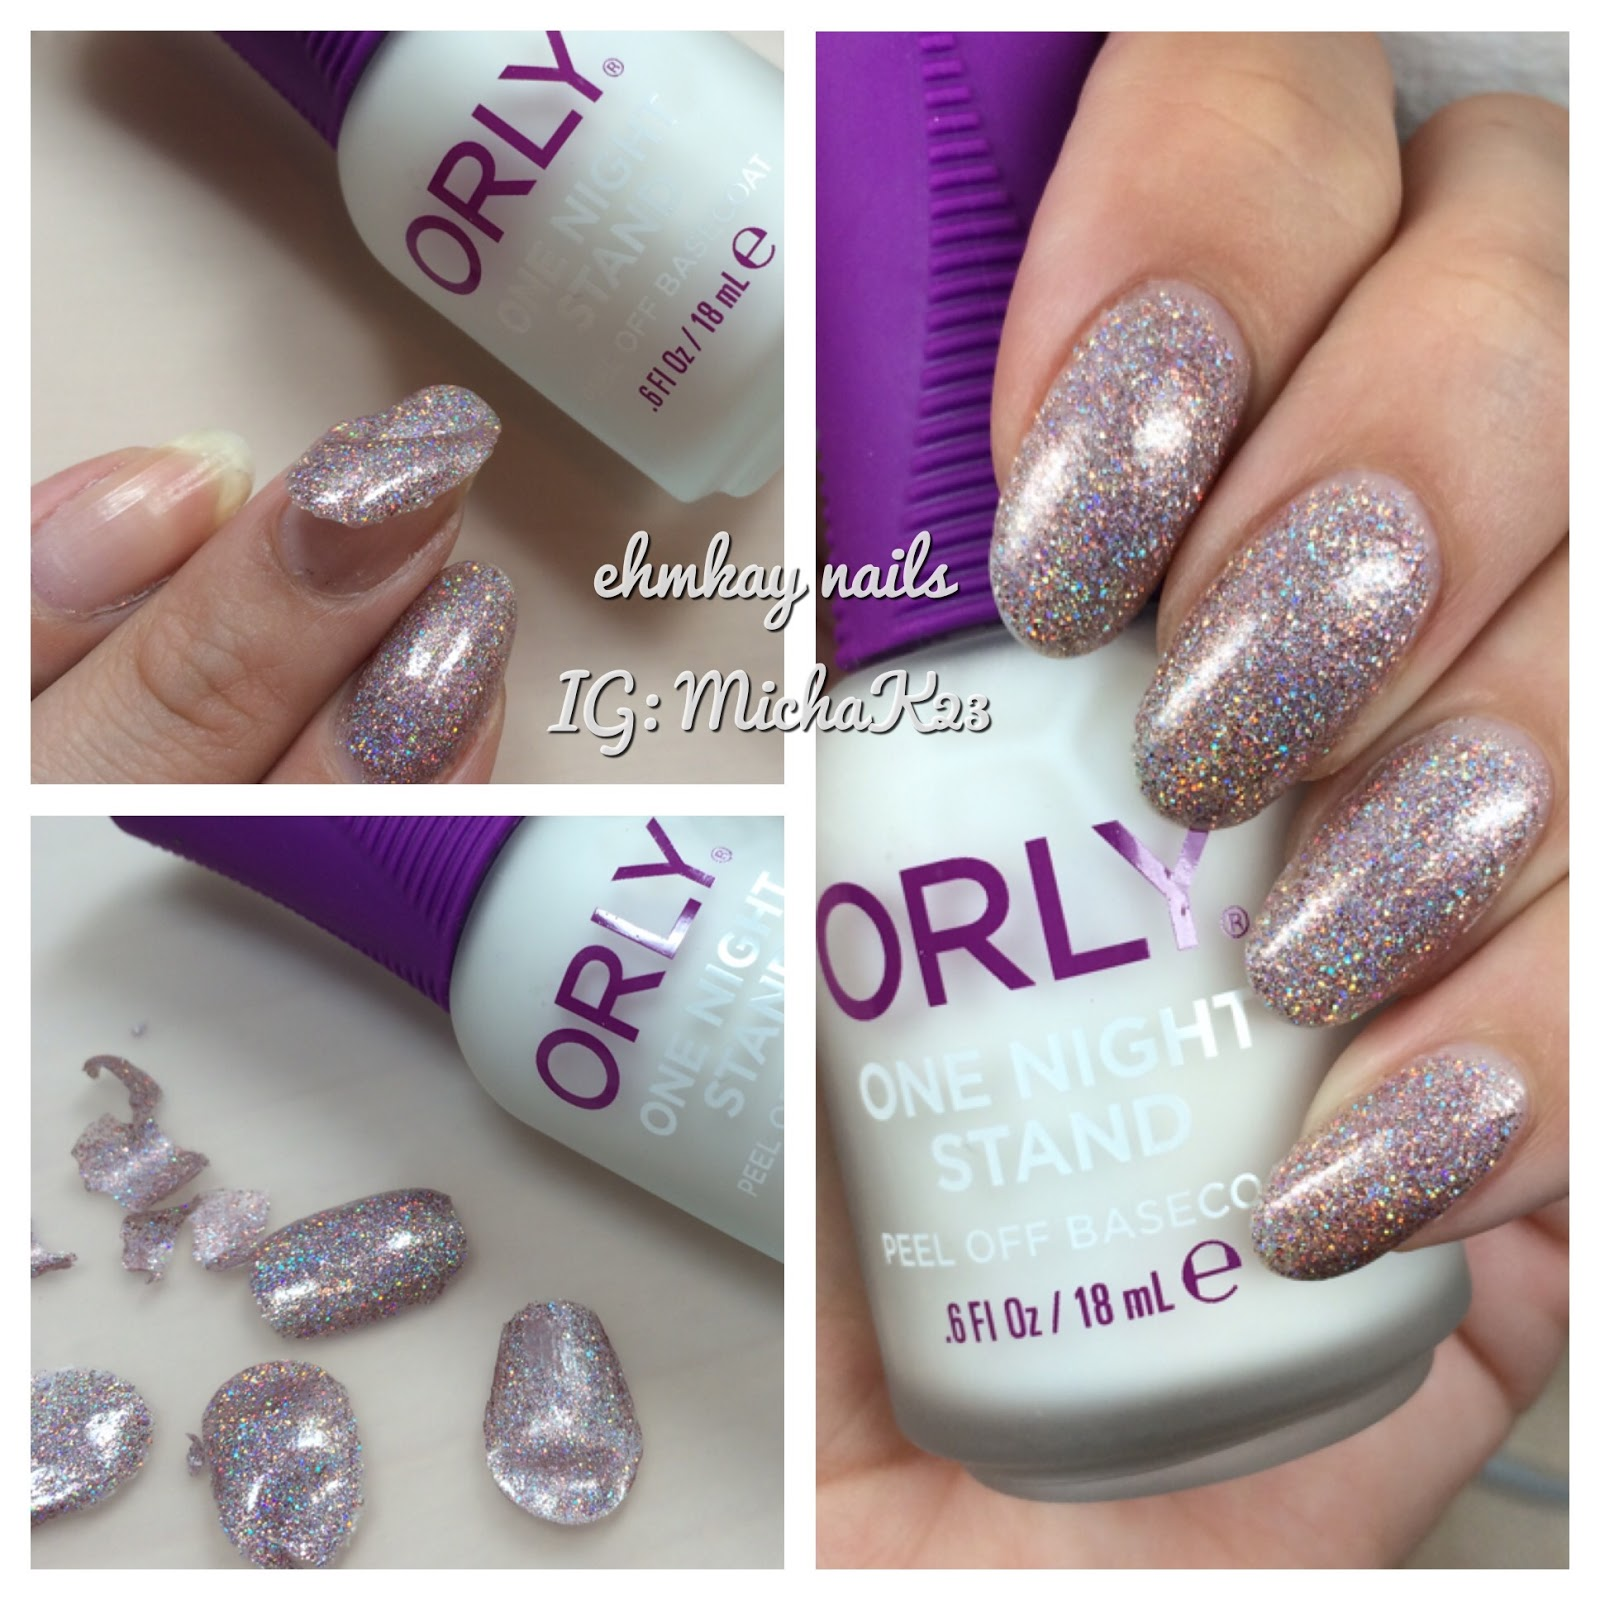 ehmkay nails: ORLY One Nail Stand Peel Off Base Coat Wear Test and ...